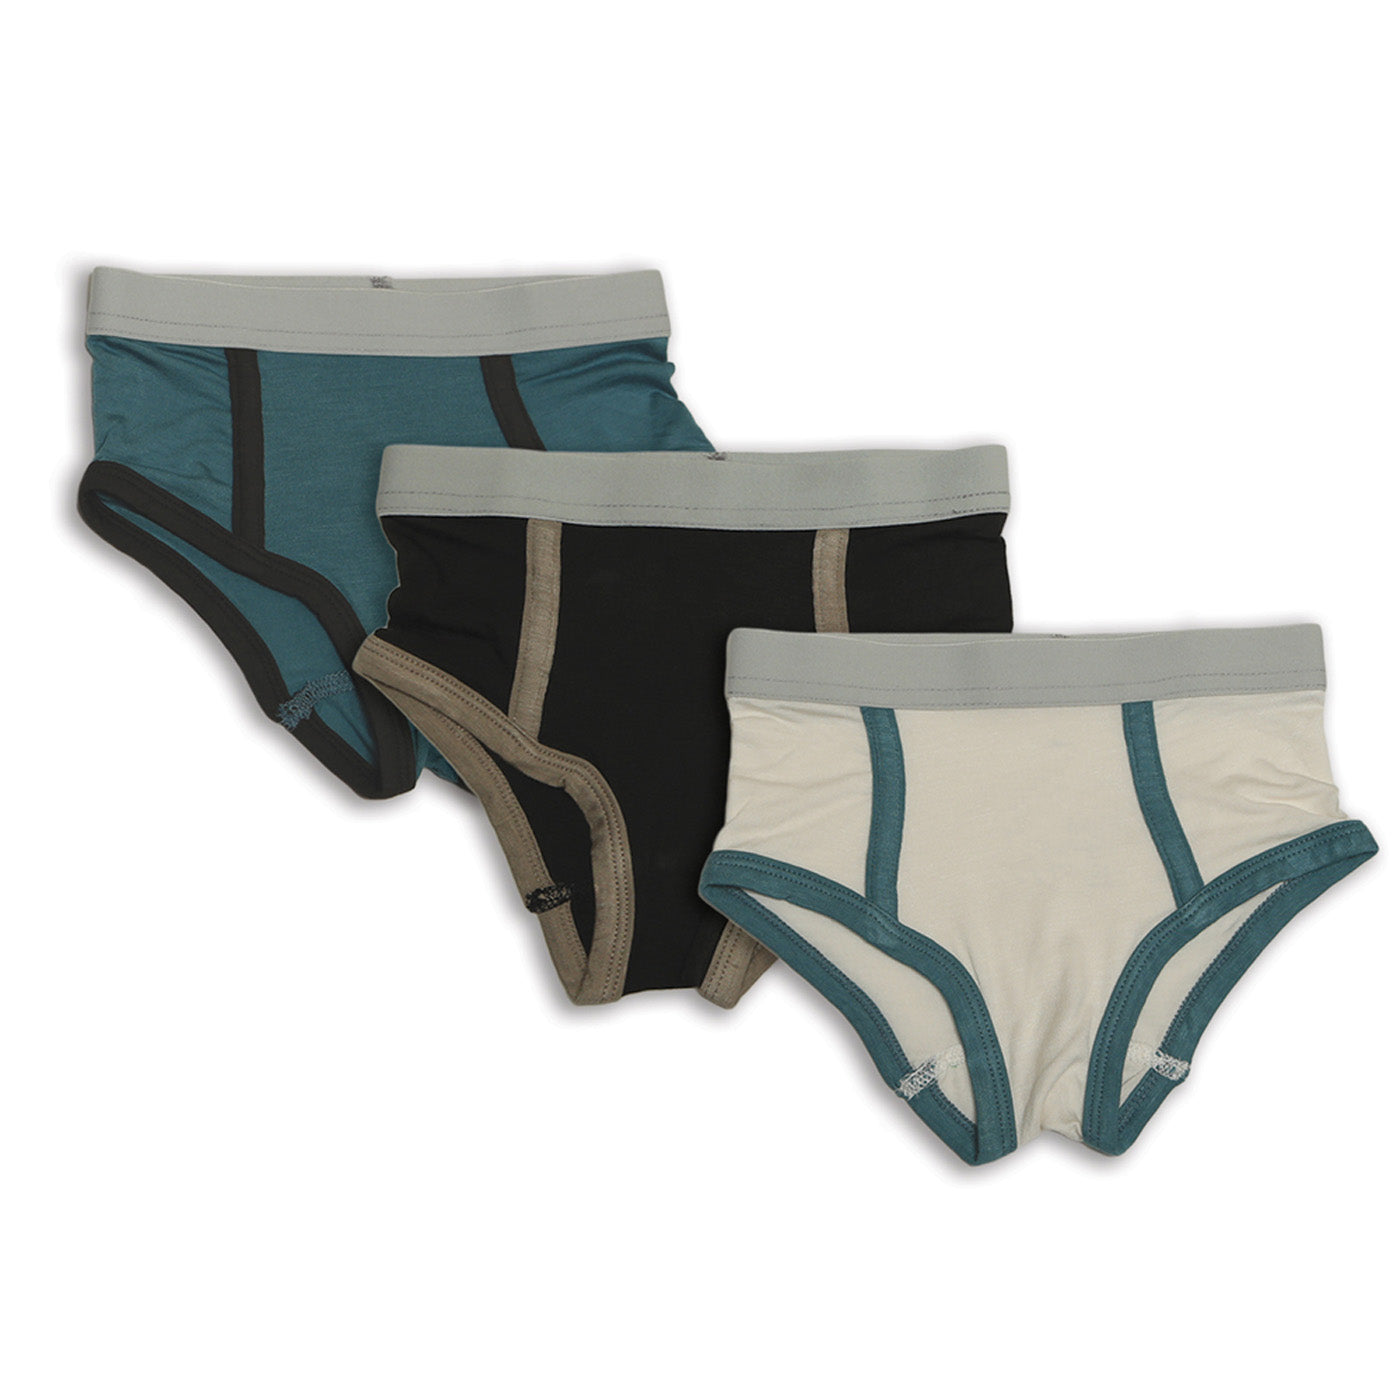 Silkberry Baby Bamboo Boys Briefs 3 PK - Blue Forest/Feather/Pirate Ship